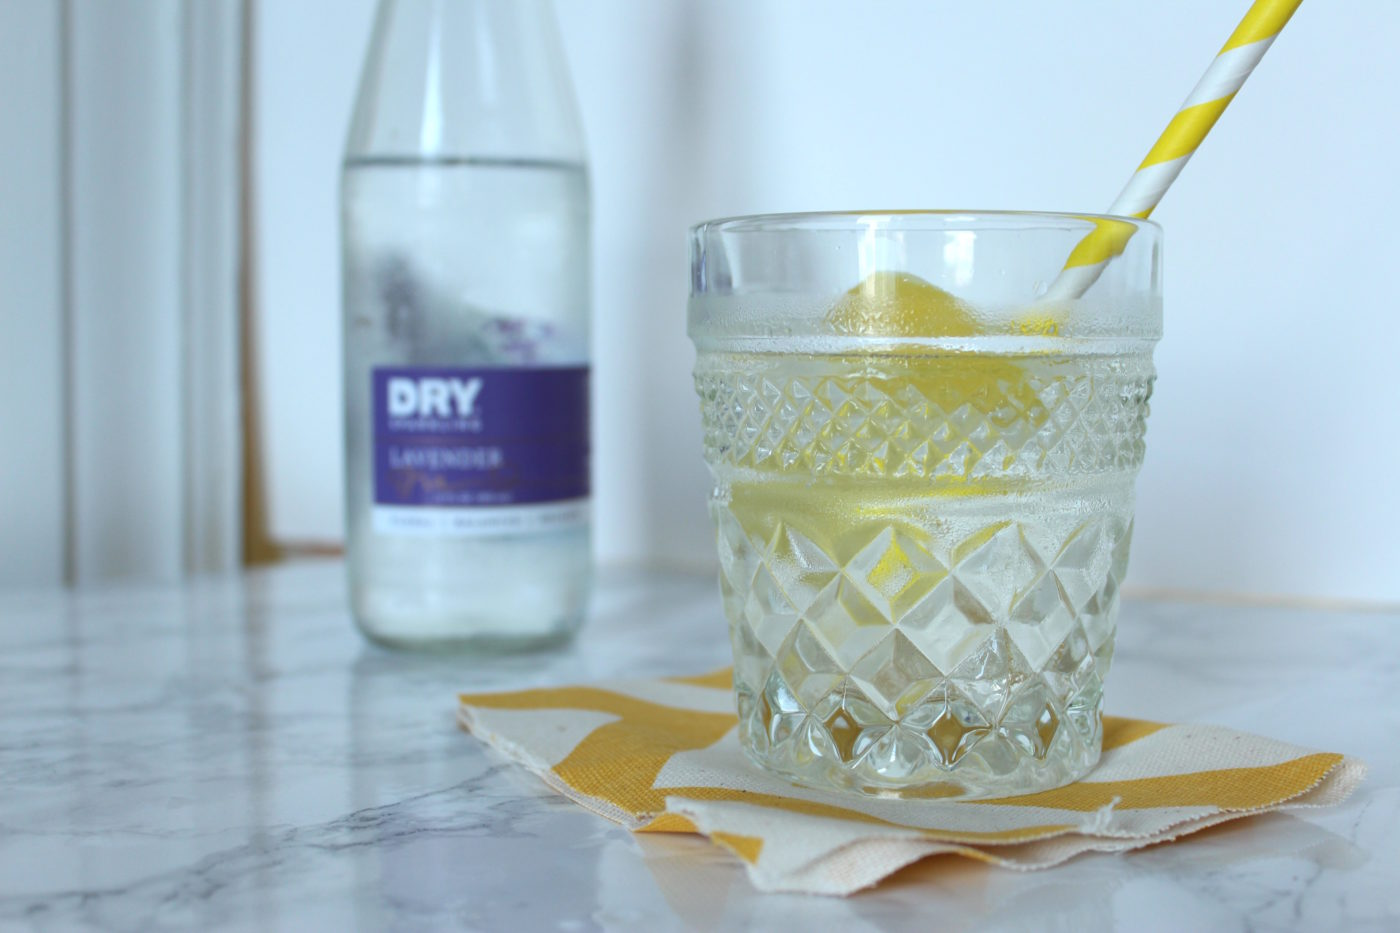 Lavender doesn't have to be a foreign concept in cocktails anymore.